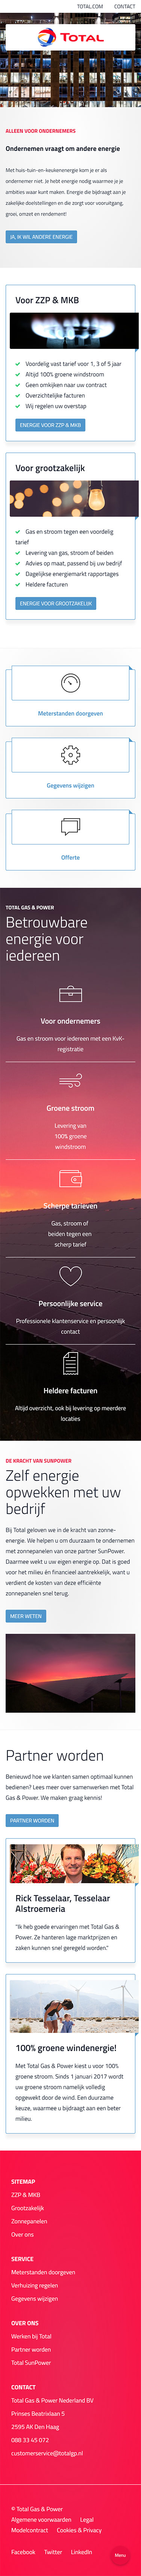 www.total energie.nl mobile